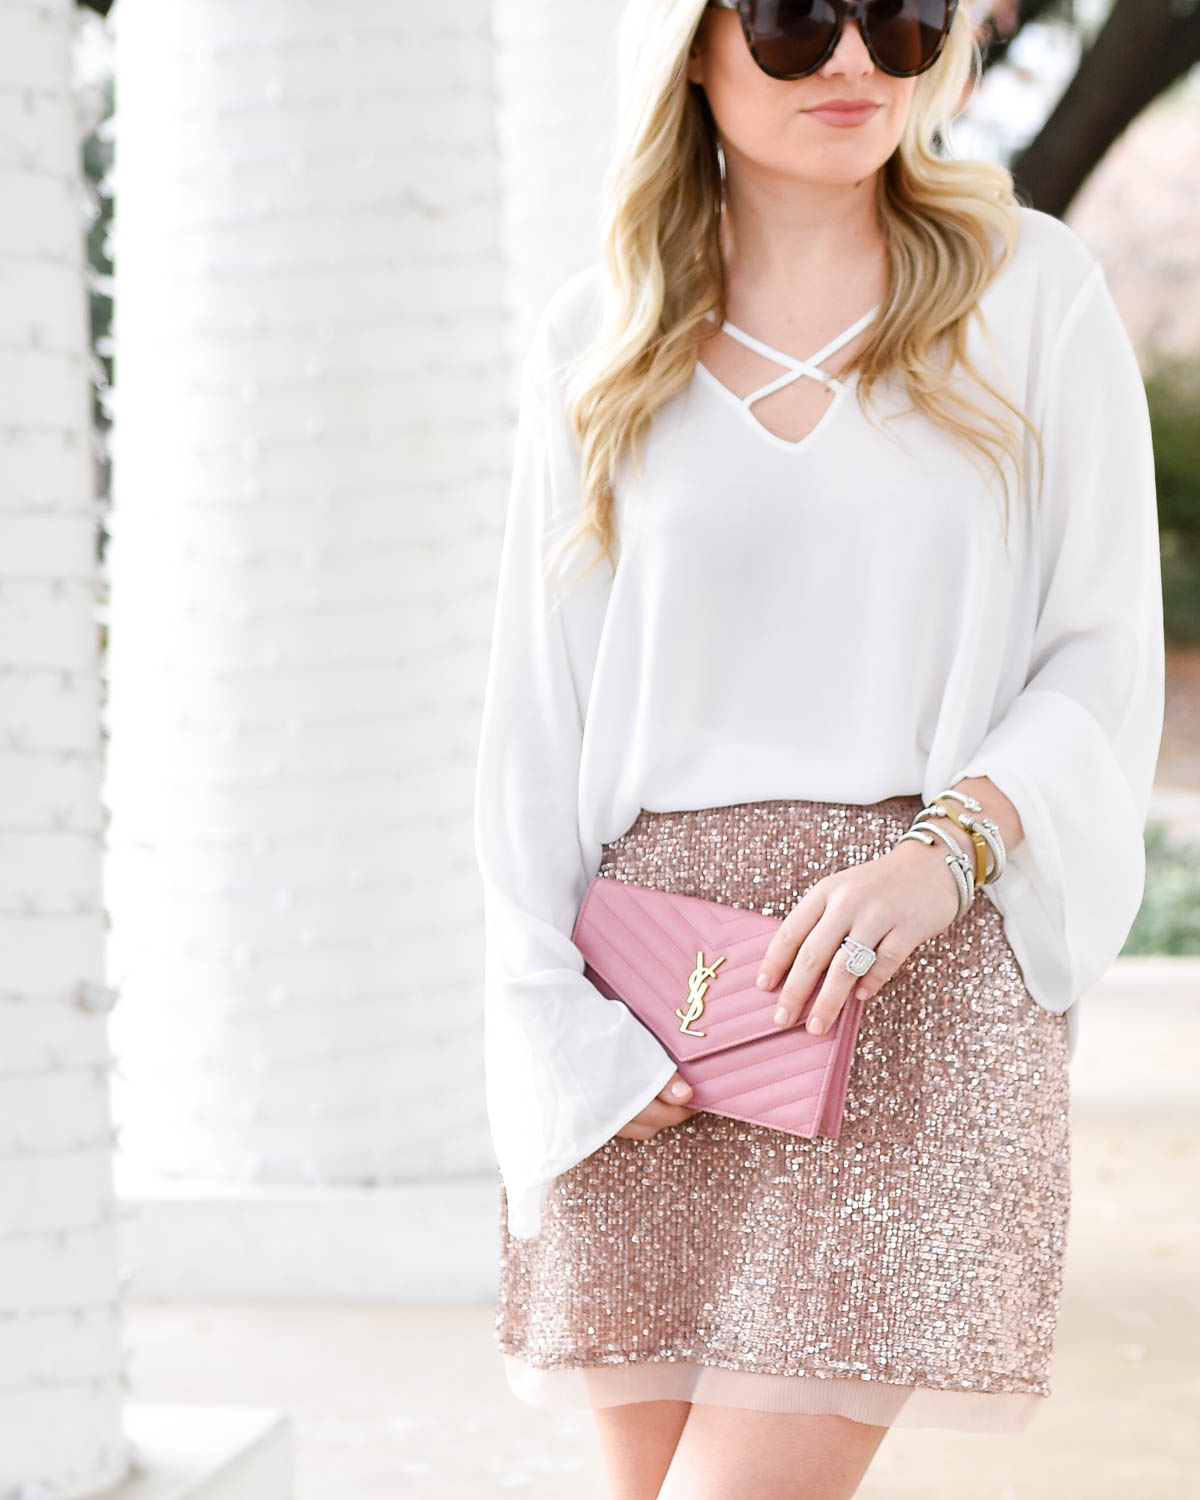 Nordstrom, Nordstrom-womens, Nordstrom-skirt, sequin-skirt, free-people-skirt, valentino-rockstuds, ssl-handbag, new-years-eve-outfit, pink-skirt